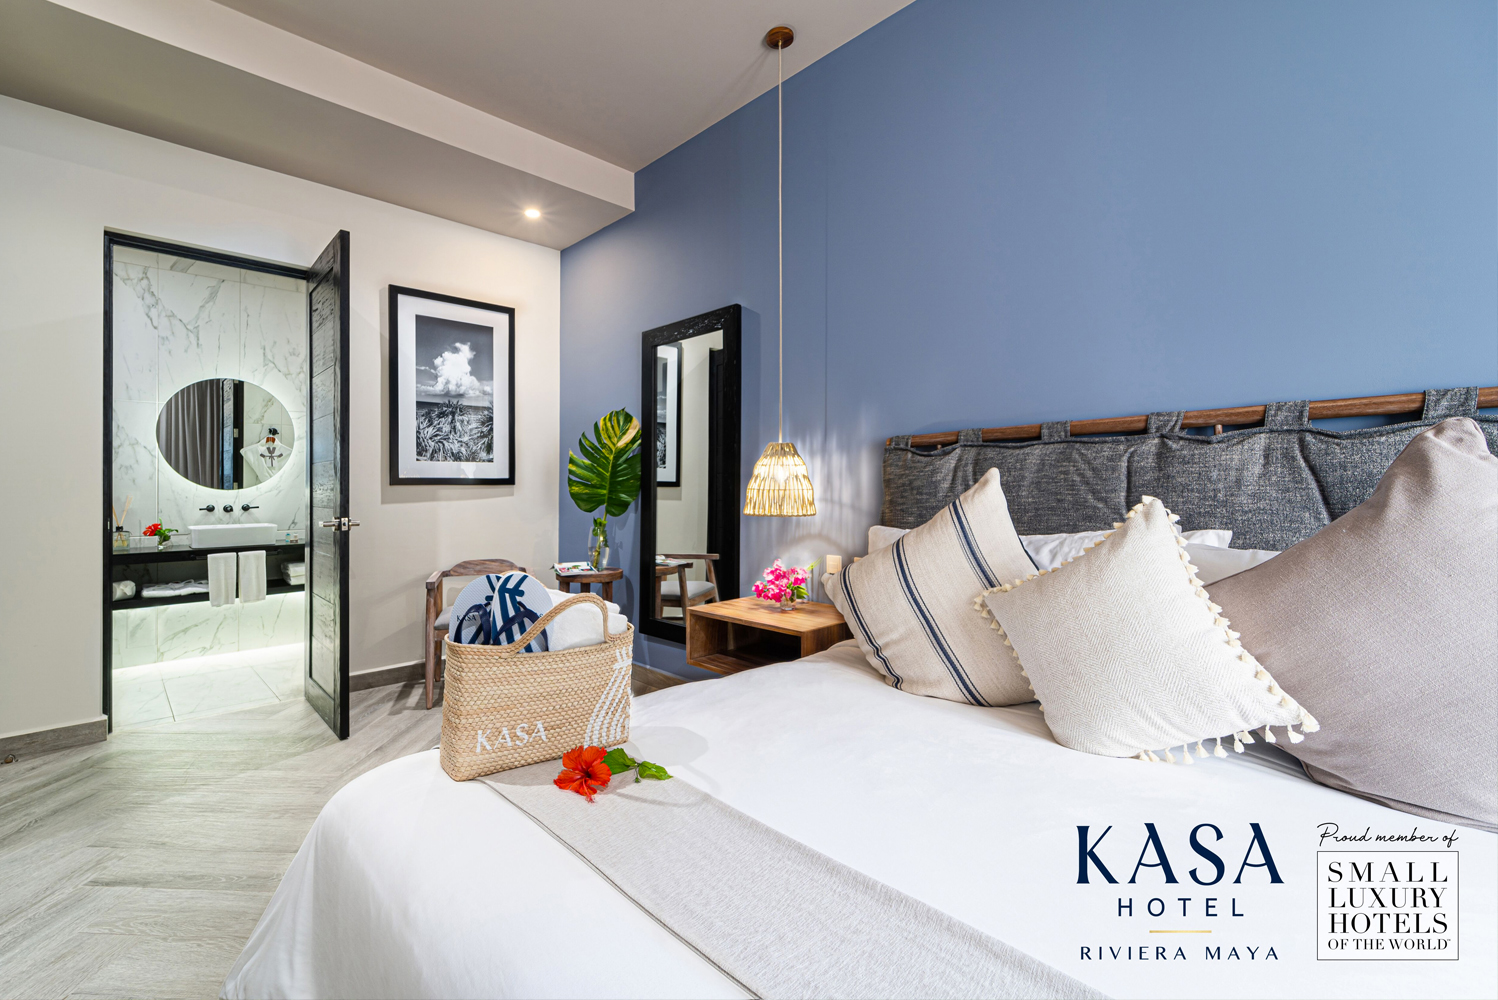 Kasa Hotel Collection is scheduled to open the new Kasa Hotel Riviera Maya this November 1.